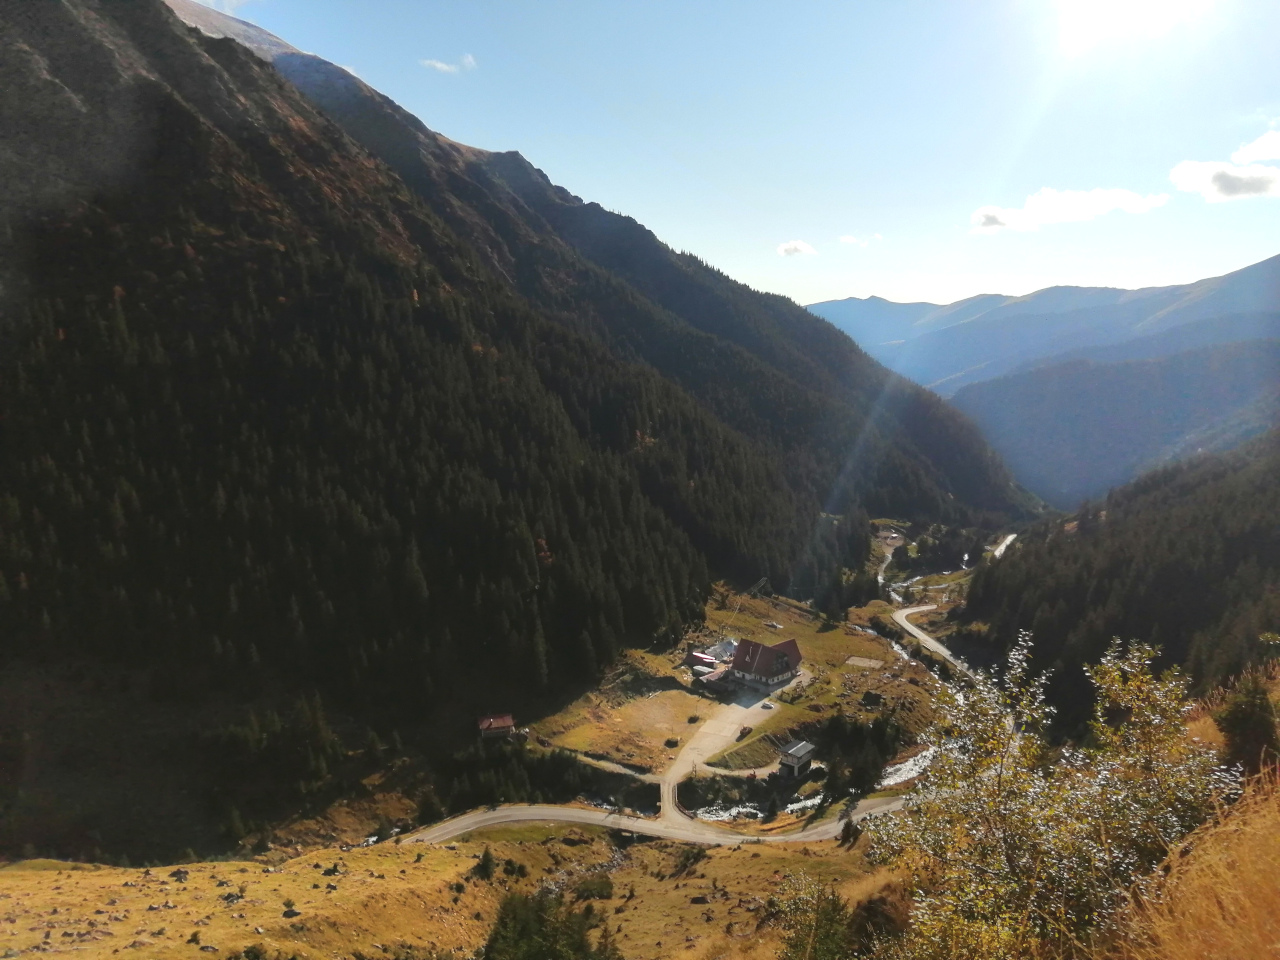 Transfagarasan view from the waterfall. This Transfagarasan travel guide presents you the best things to see and do on the Transfagarasan road.